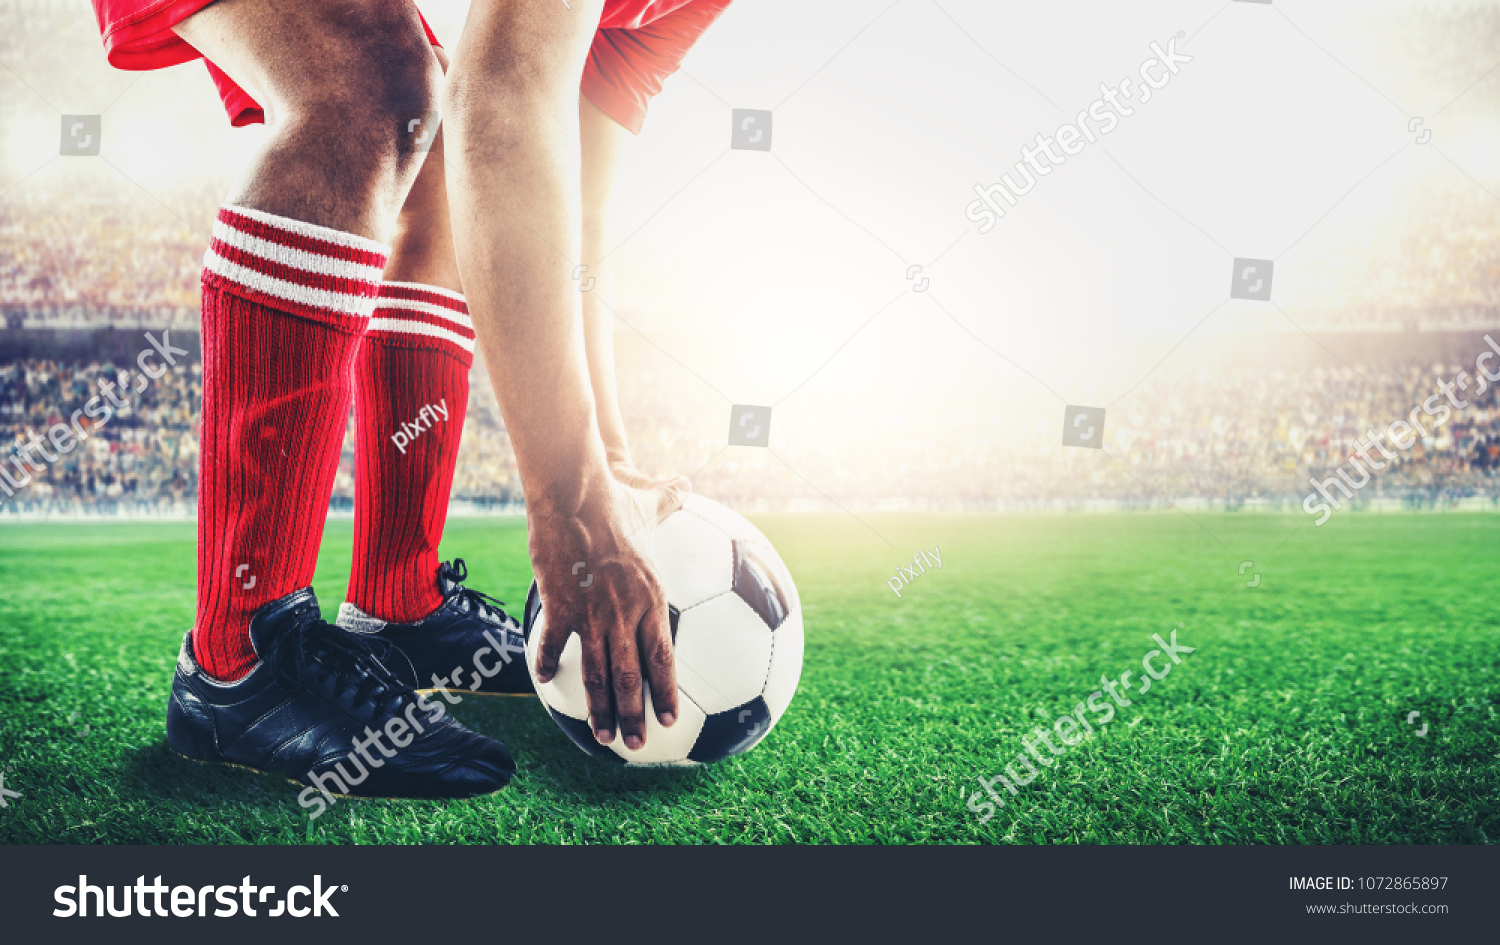 red team soccer footballer get the ball to free kick or penalty kick during match in the stadium #1072865897